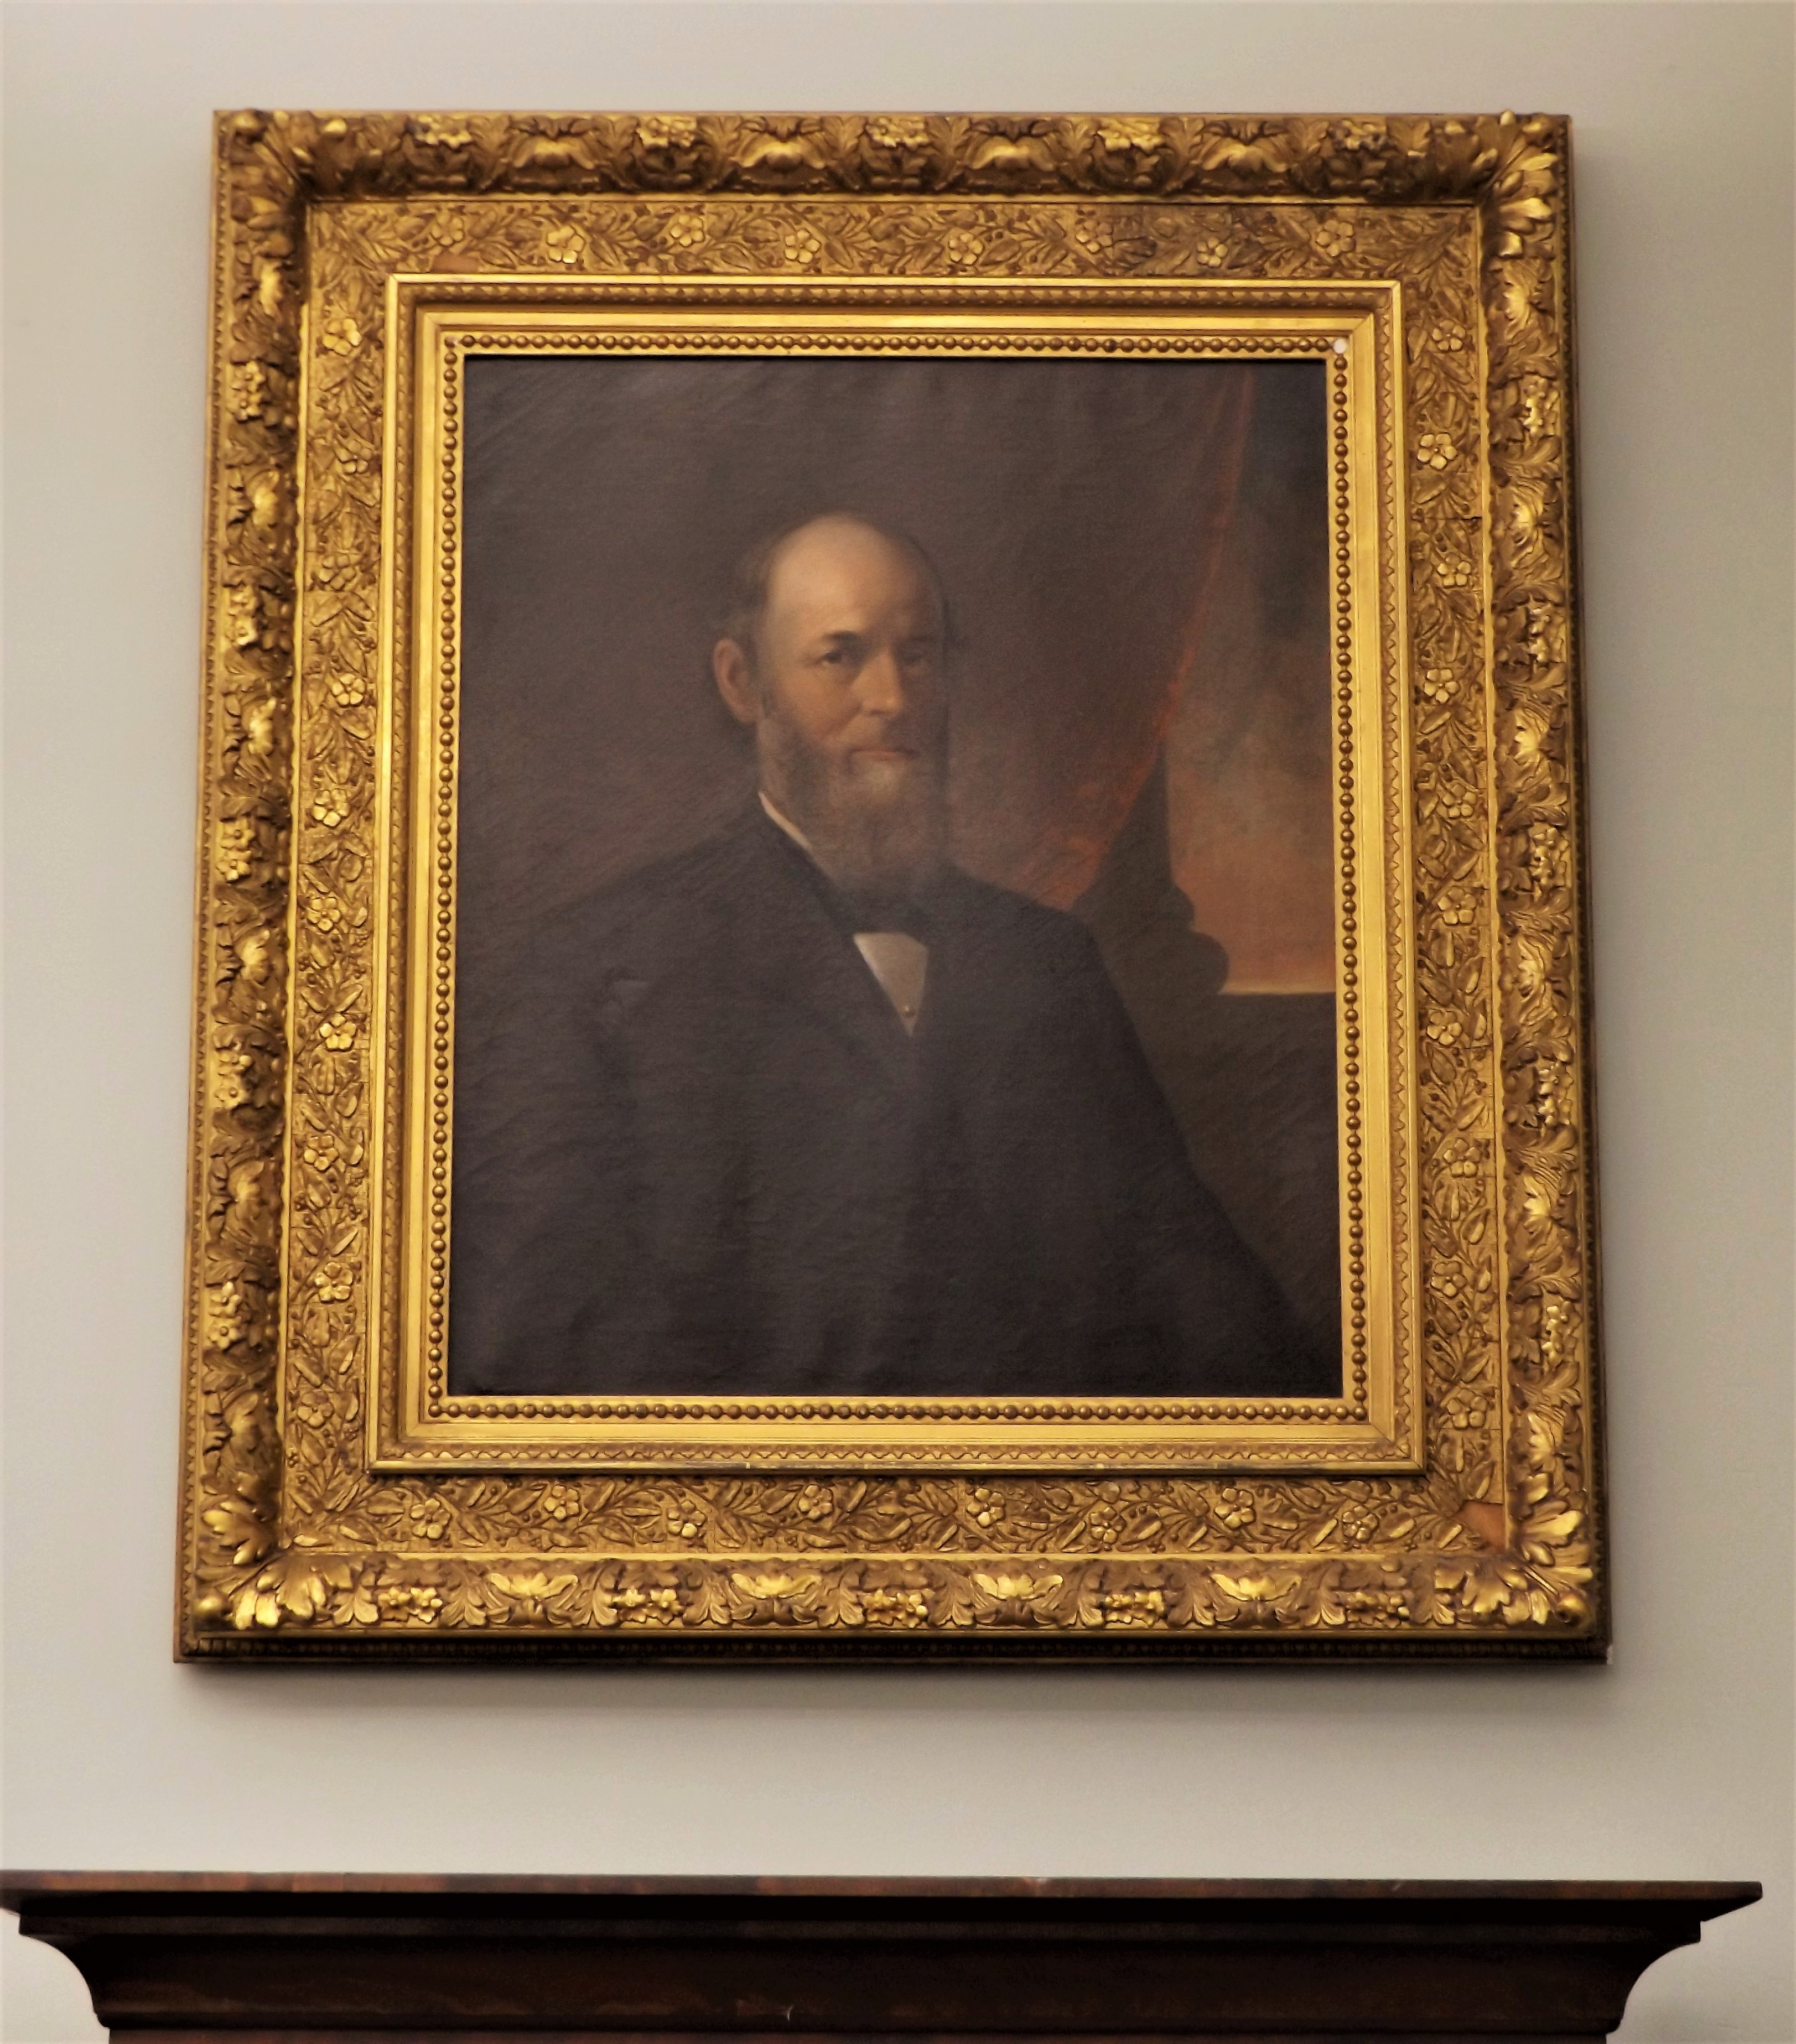 Portrait of Theodore Jerome Harrington Gifted to Jacob Edwards Library